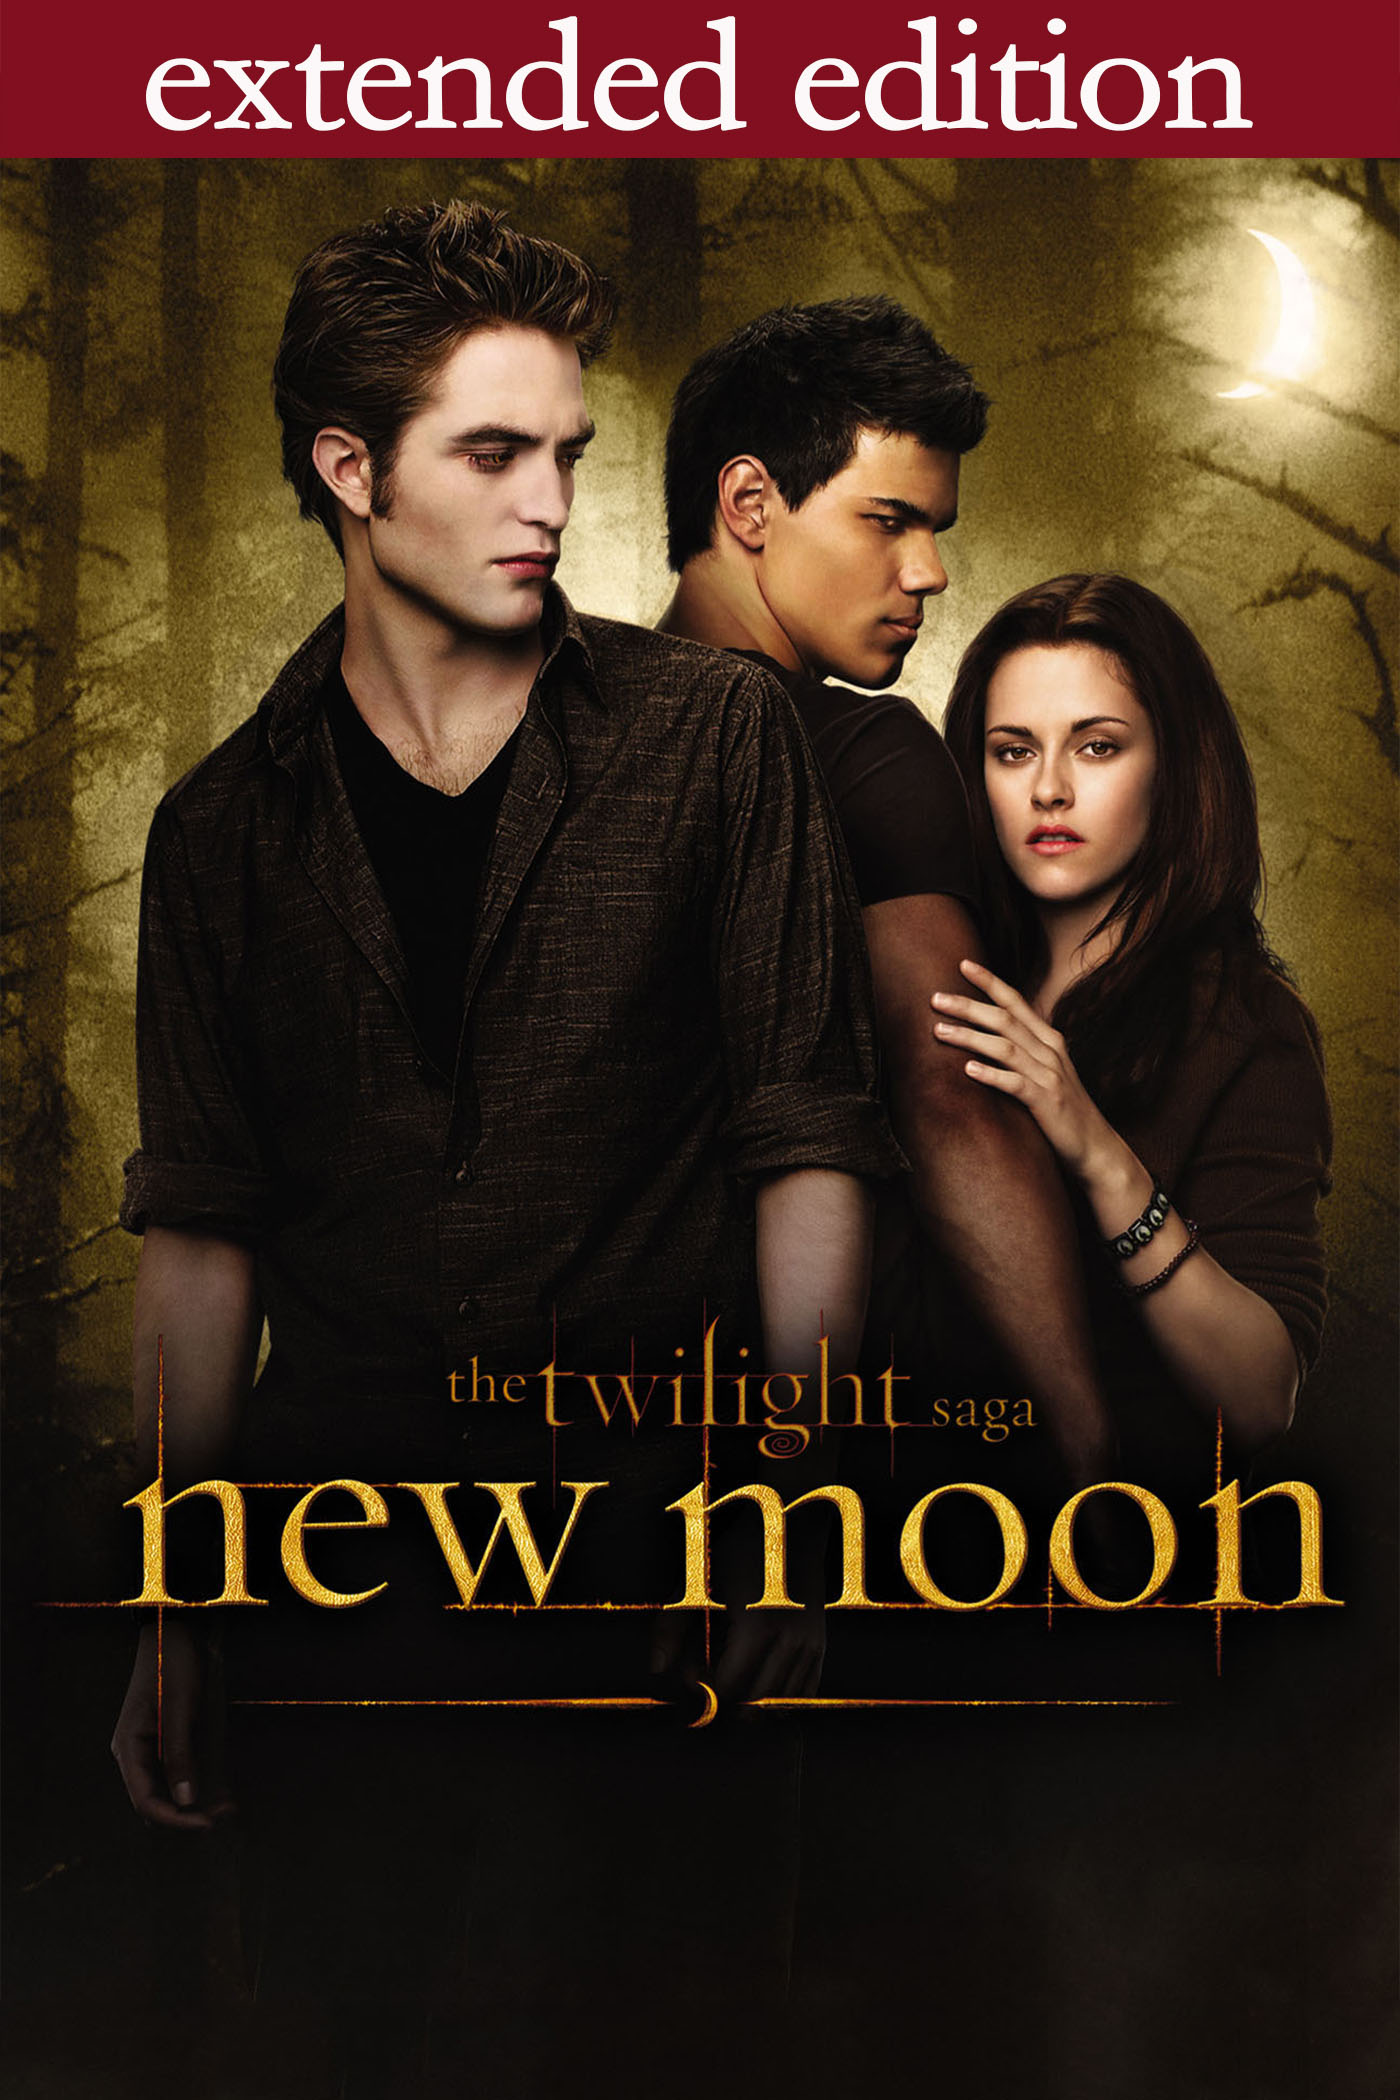 Twilight Saga: New Moon (Extended Edition)